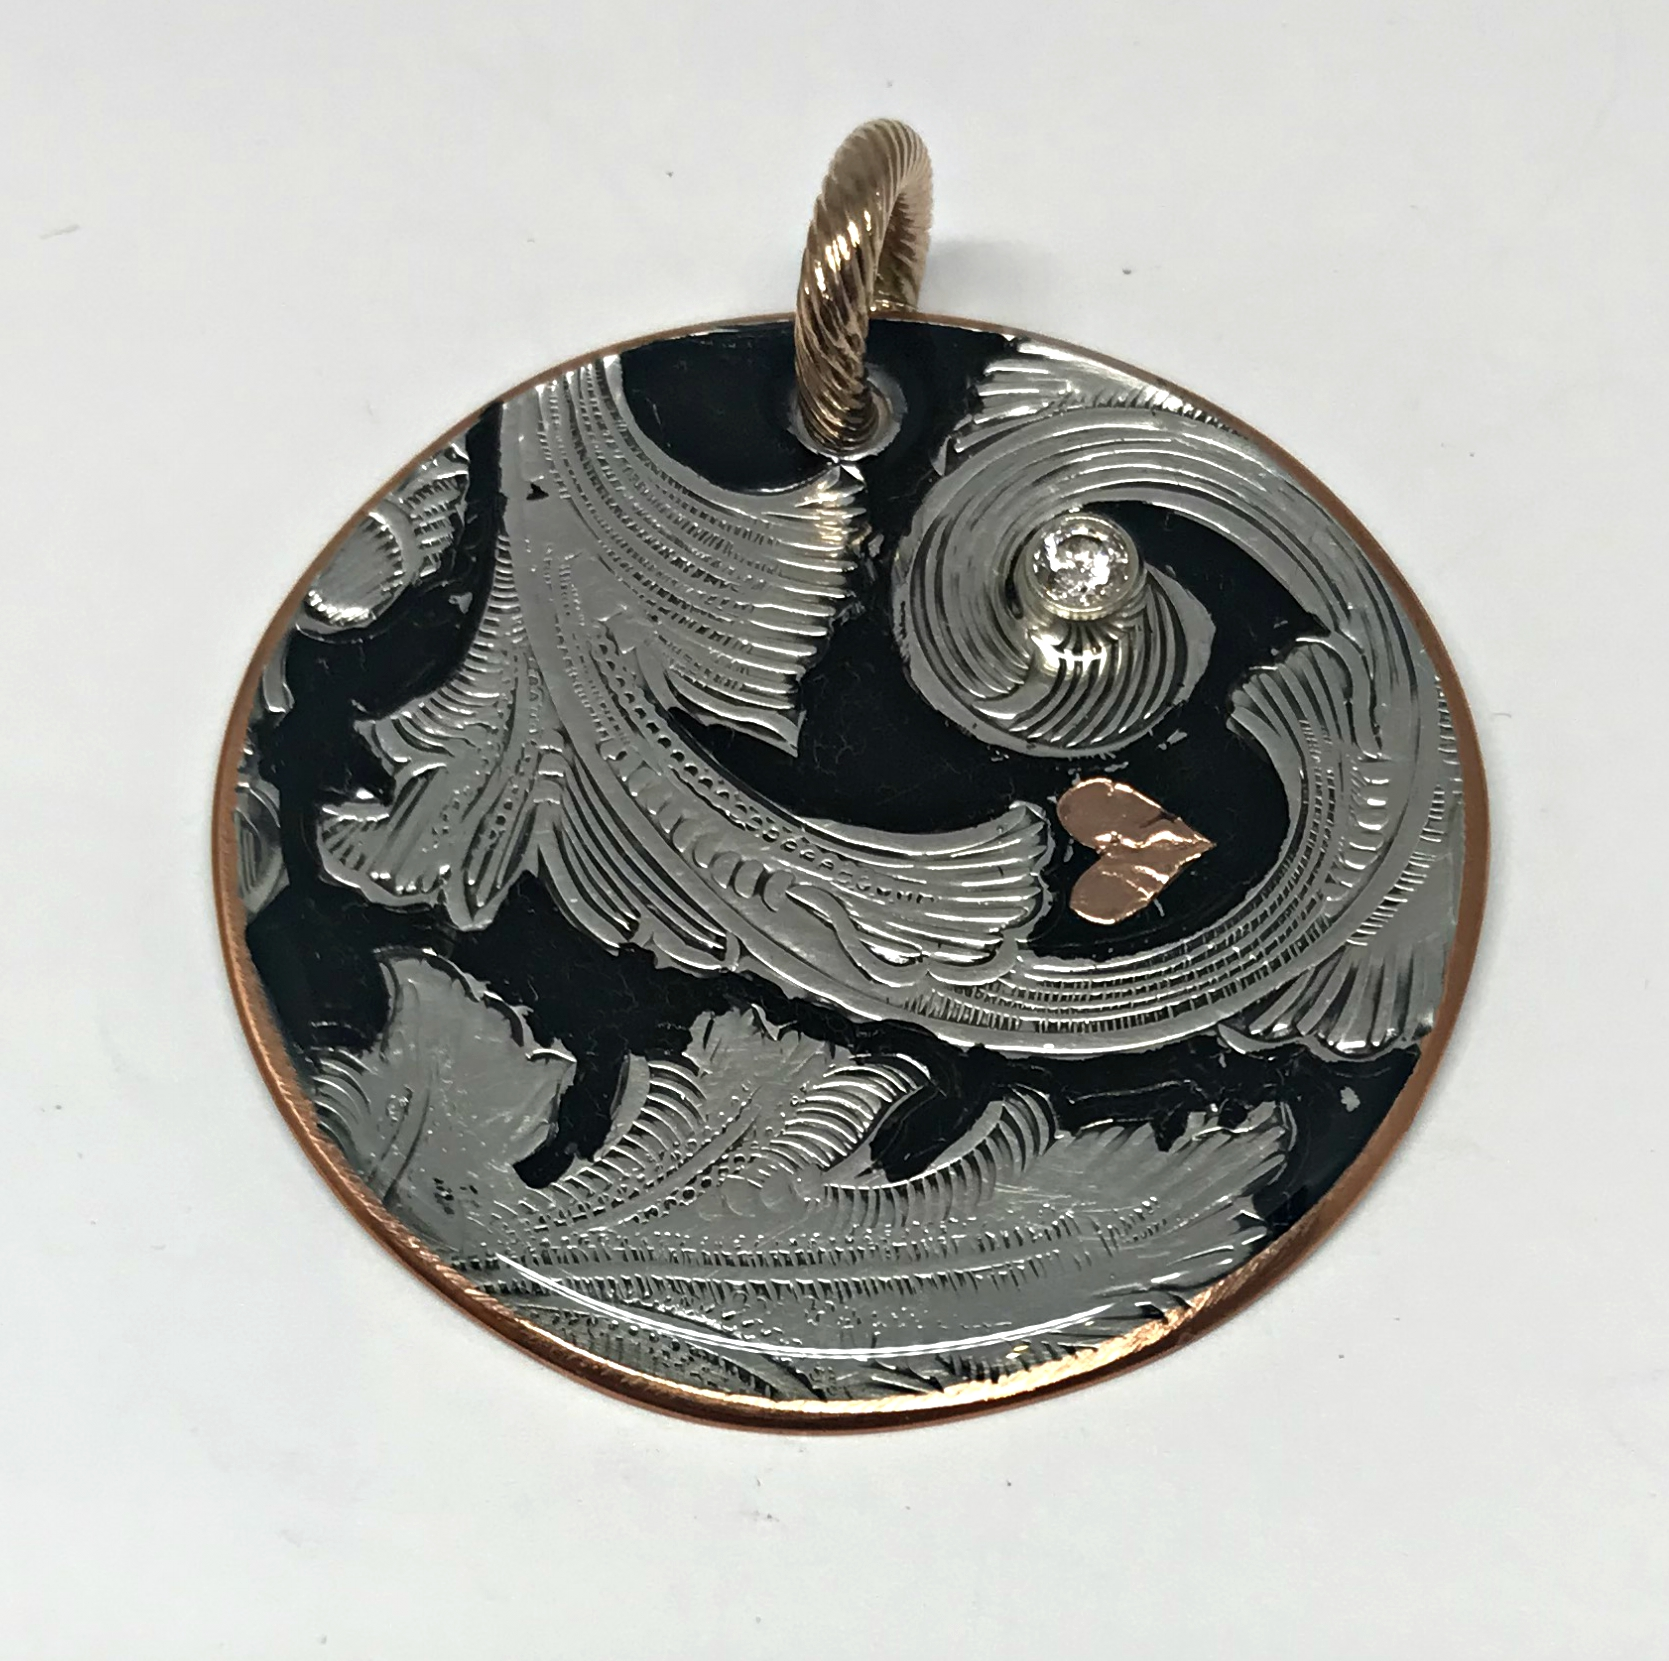 Life on a Silver Platter #4 pendant by Karyn Chopik | Effusion Art Gallery + Cast Glass Studio, Invermere BC